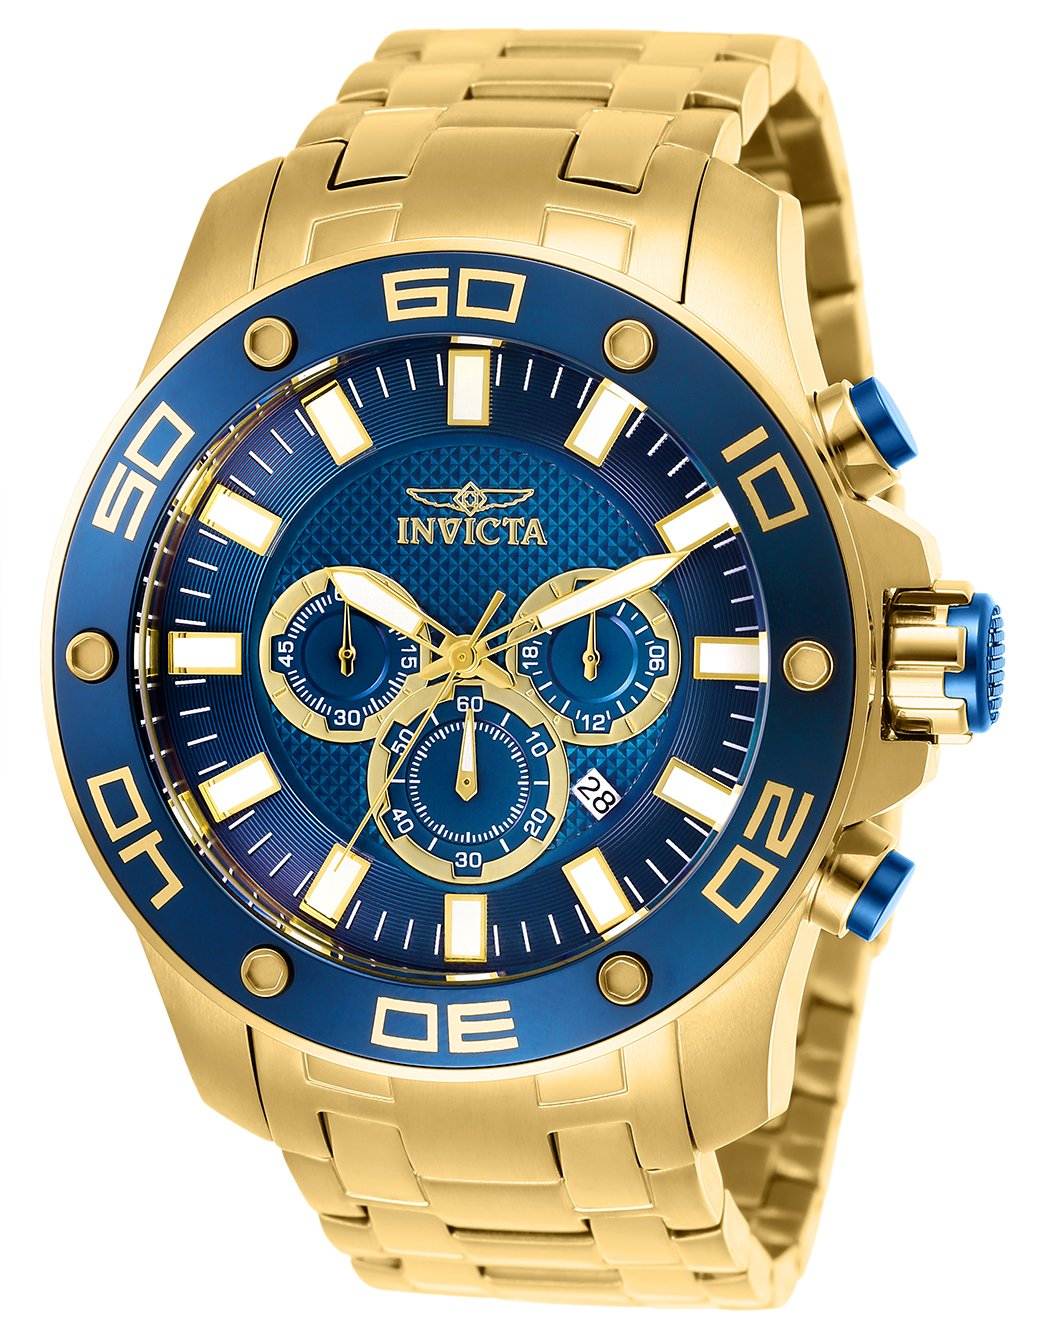 6a96ed0f5bfc Invicta Pro Diver Chronograph Blue Dial Mens Watch 26078